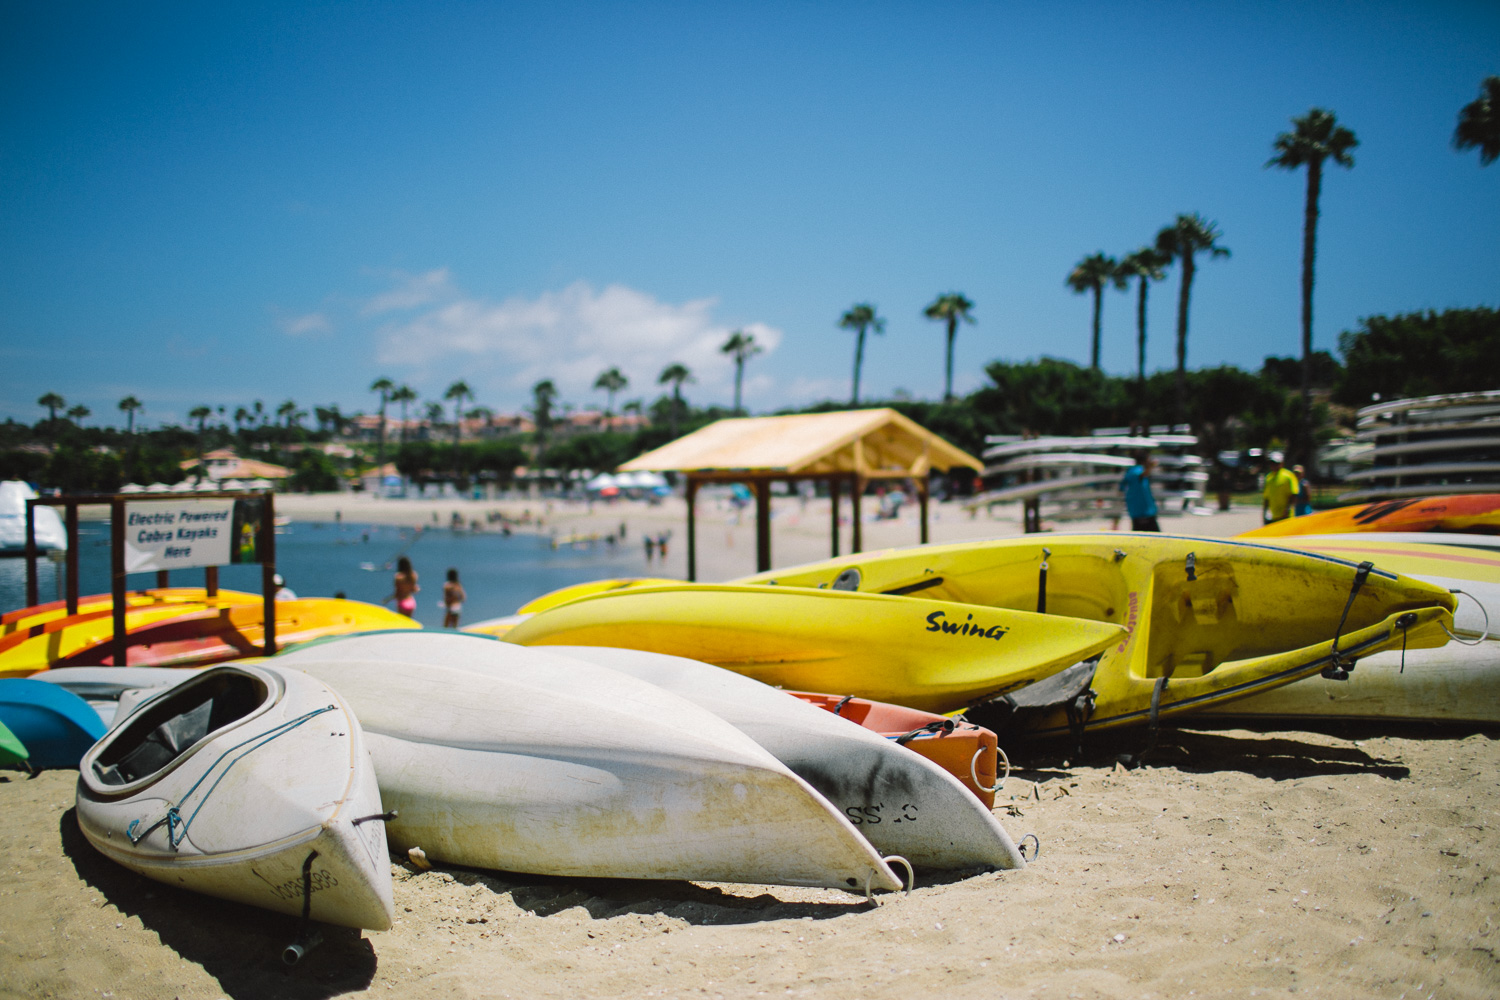 Racks on racks of Kayaks... must be nice. Shot this one at f/1.4 at 1/8000th ISO100.